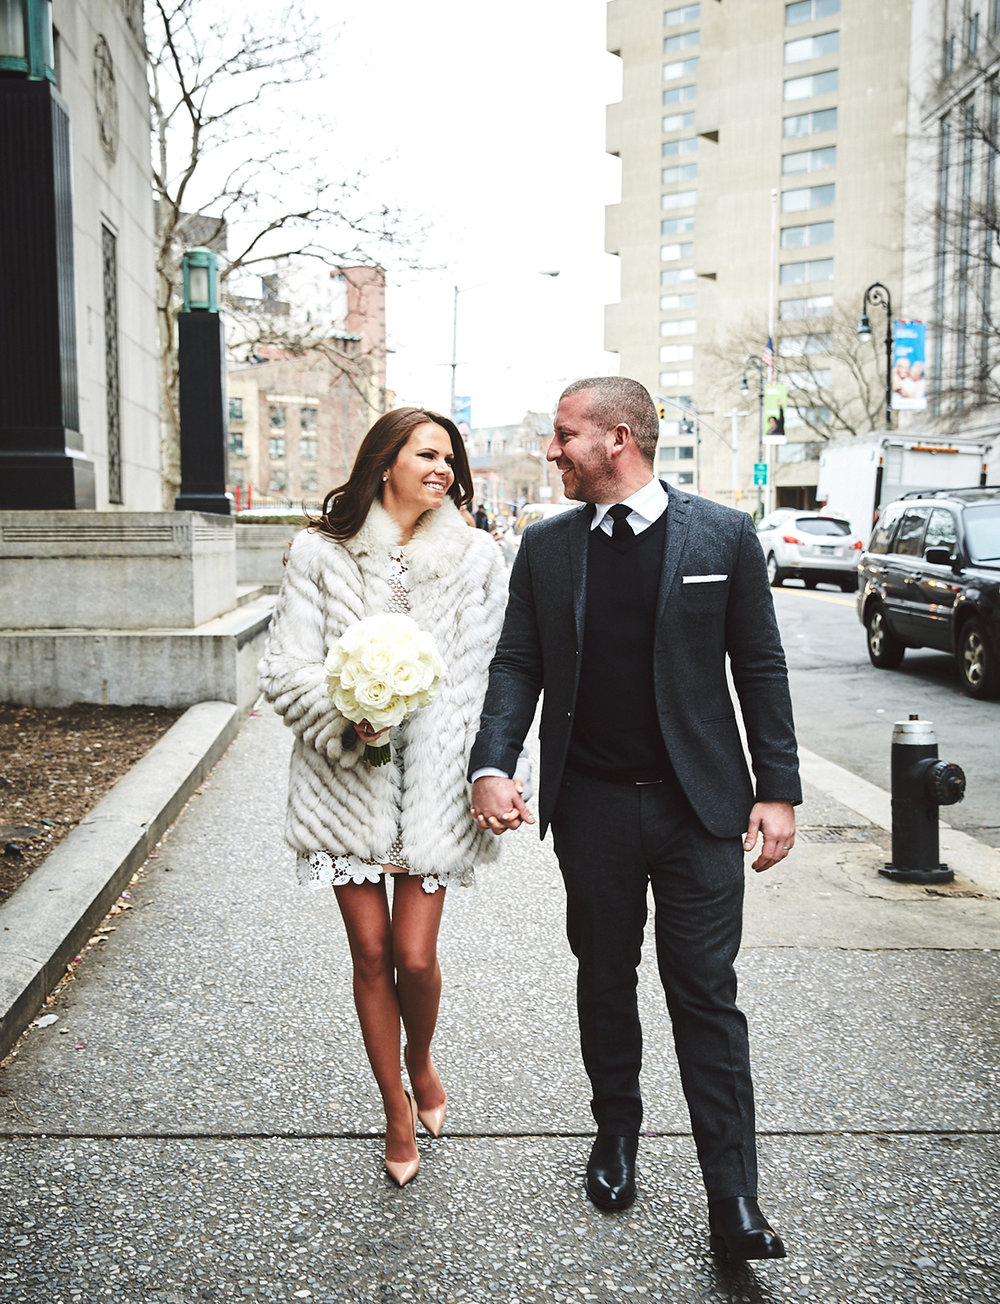 161229_NYCElopemenlPhotographer_CityHallWedding_By_BriJohnsonWeddings_0024.jpg